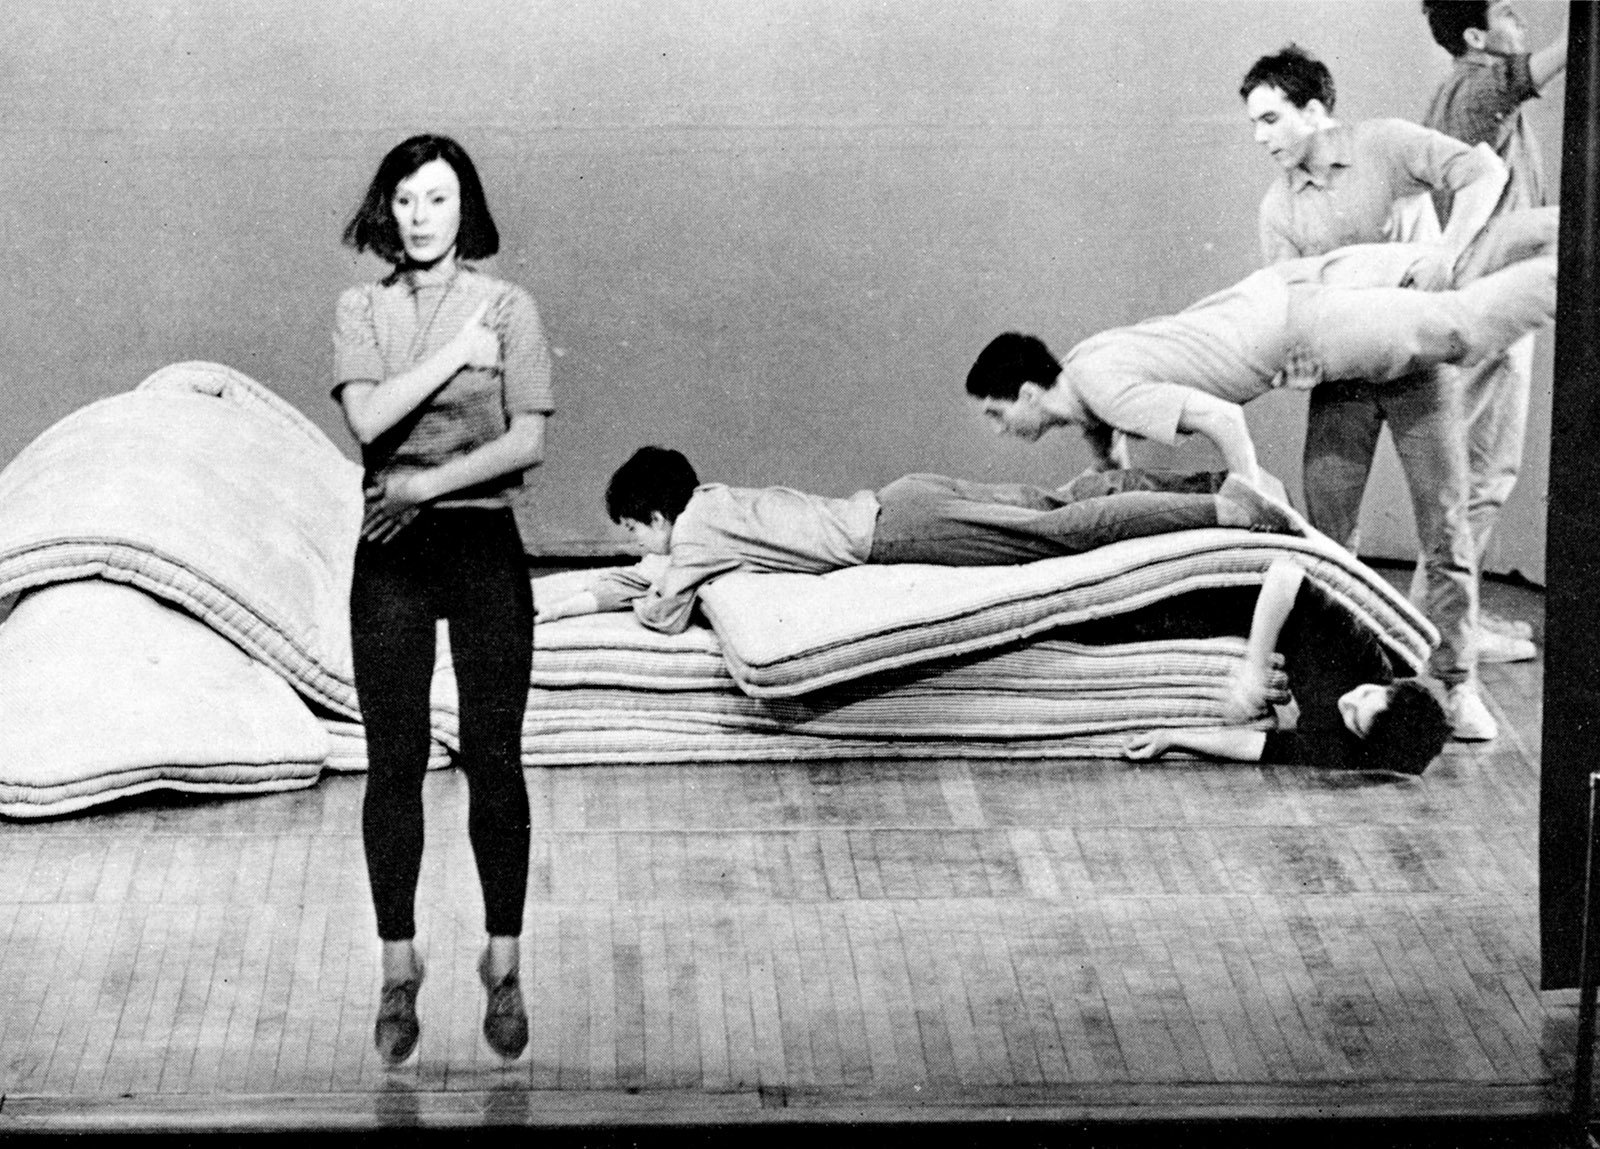 Yvonne Rainer (left) performing 'Corridor Solo' and 'Crawling Through' from Parts of Some Sextets at the Wadsworth Athenaeum, Hartford, Connecticut, 1965